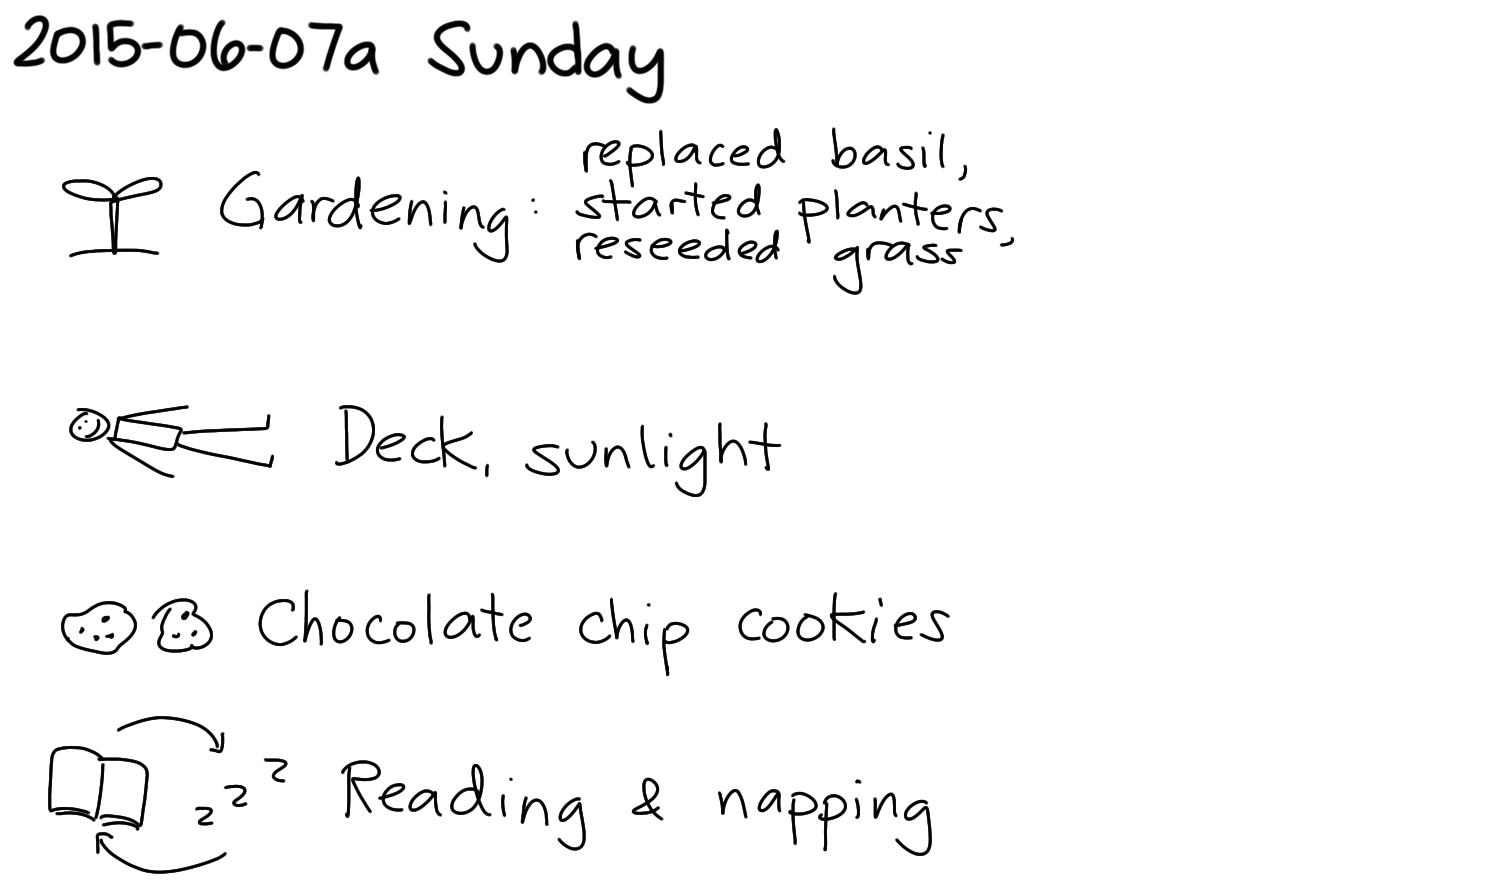 2015-06-07a Sunday -- index card #journal.png